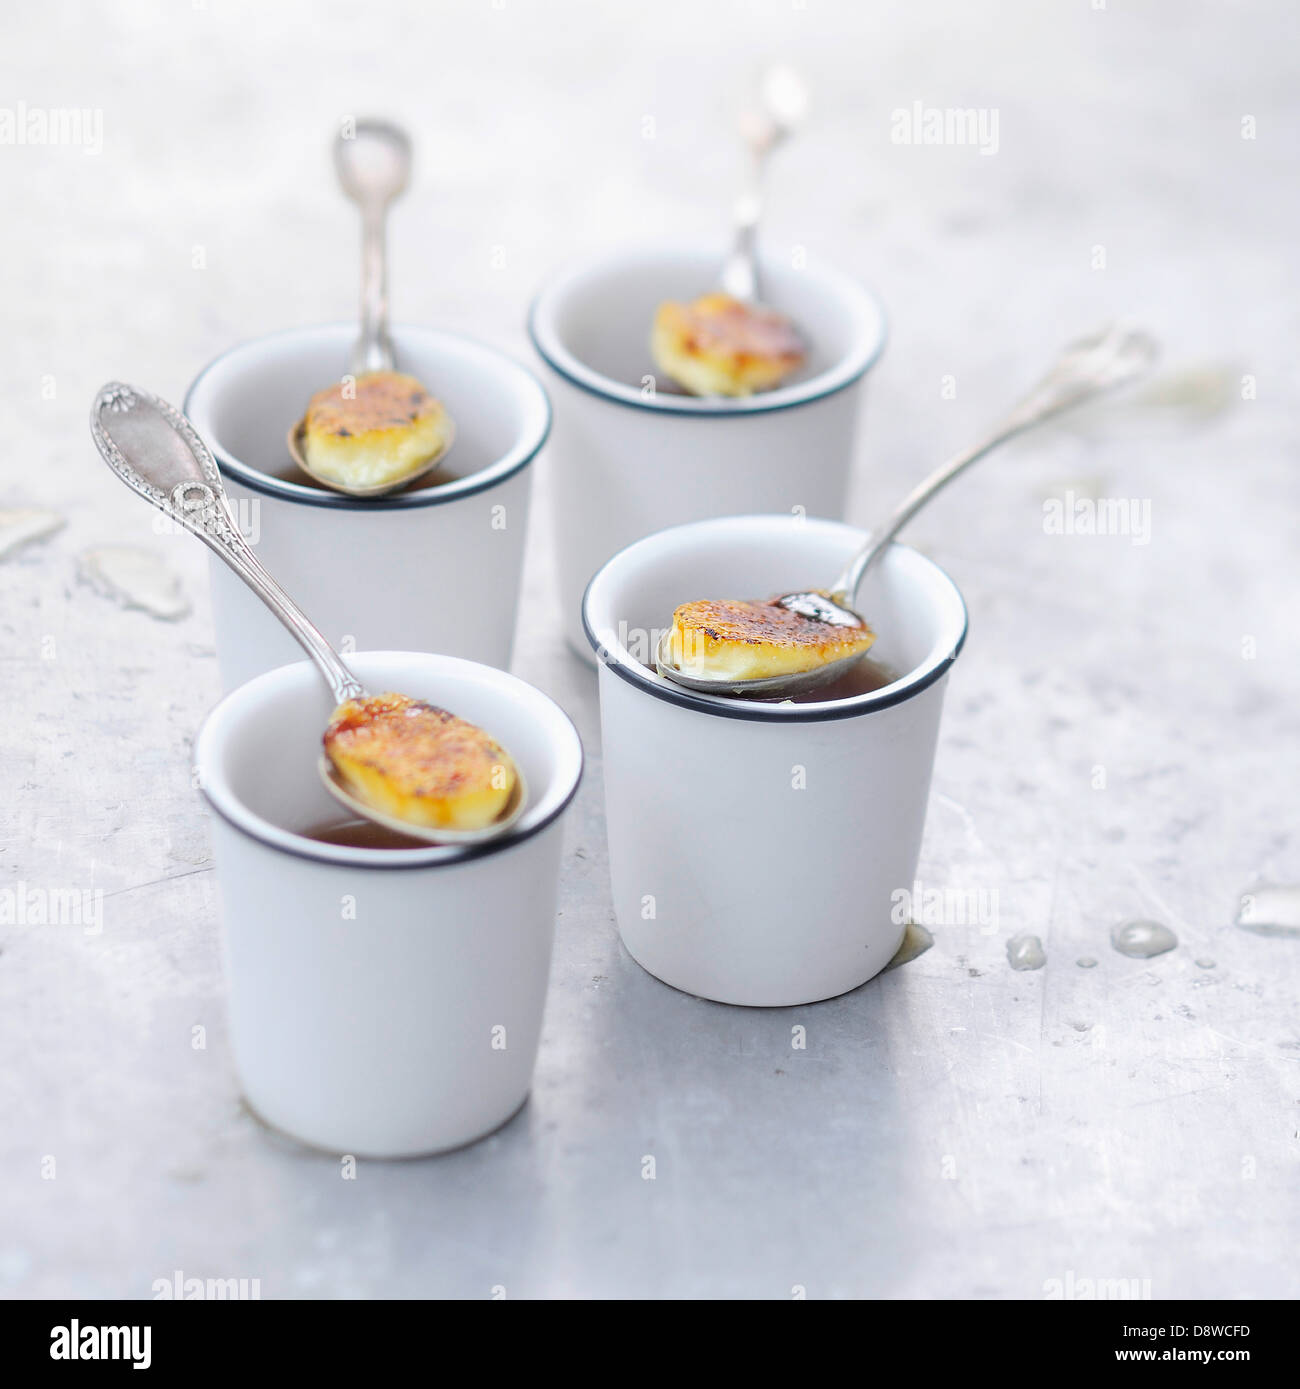 Spoonfuls of Creme brulée - Stock Image